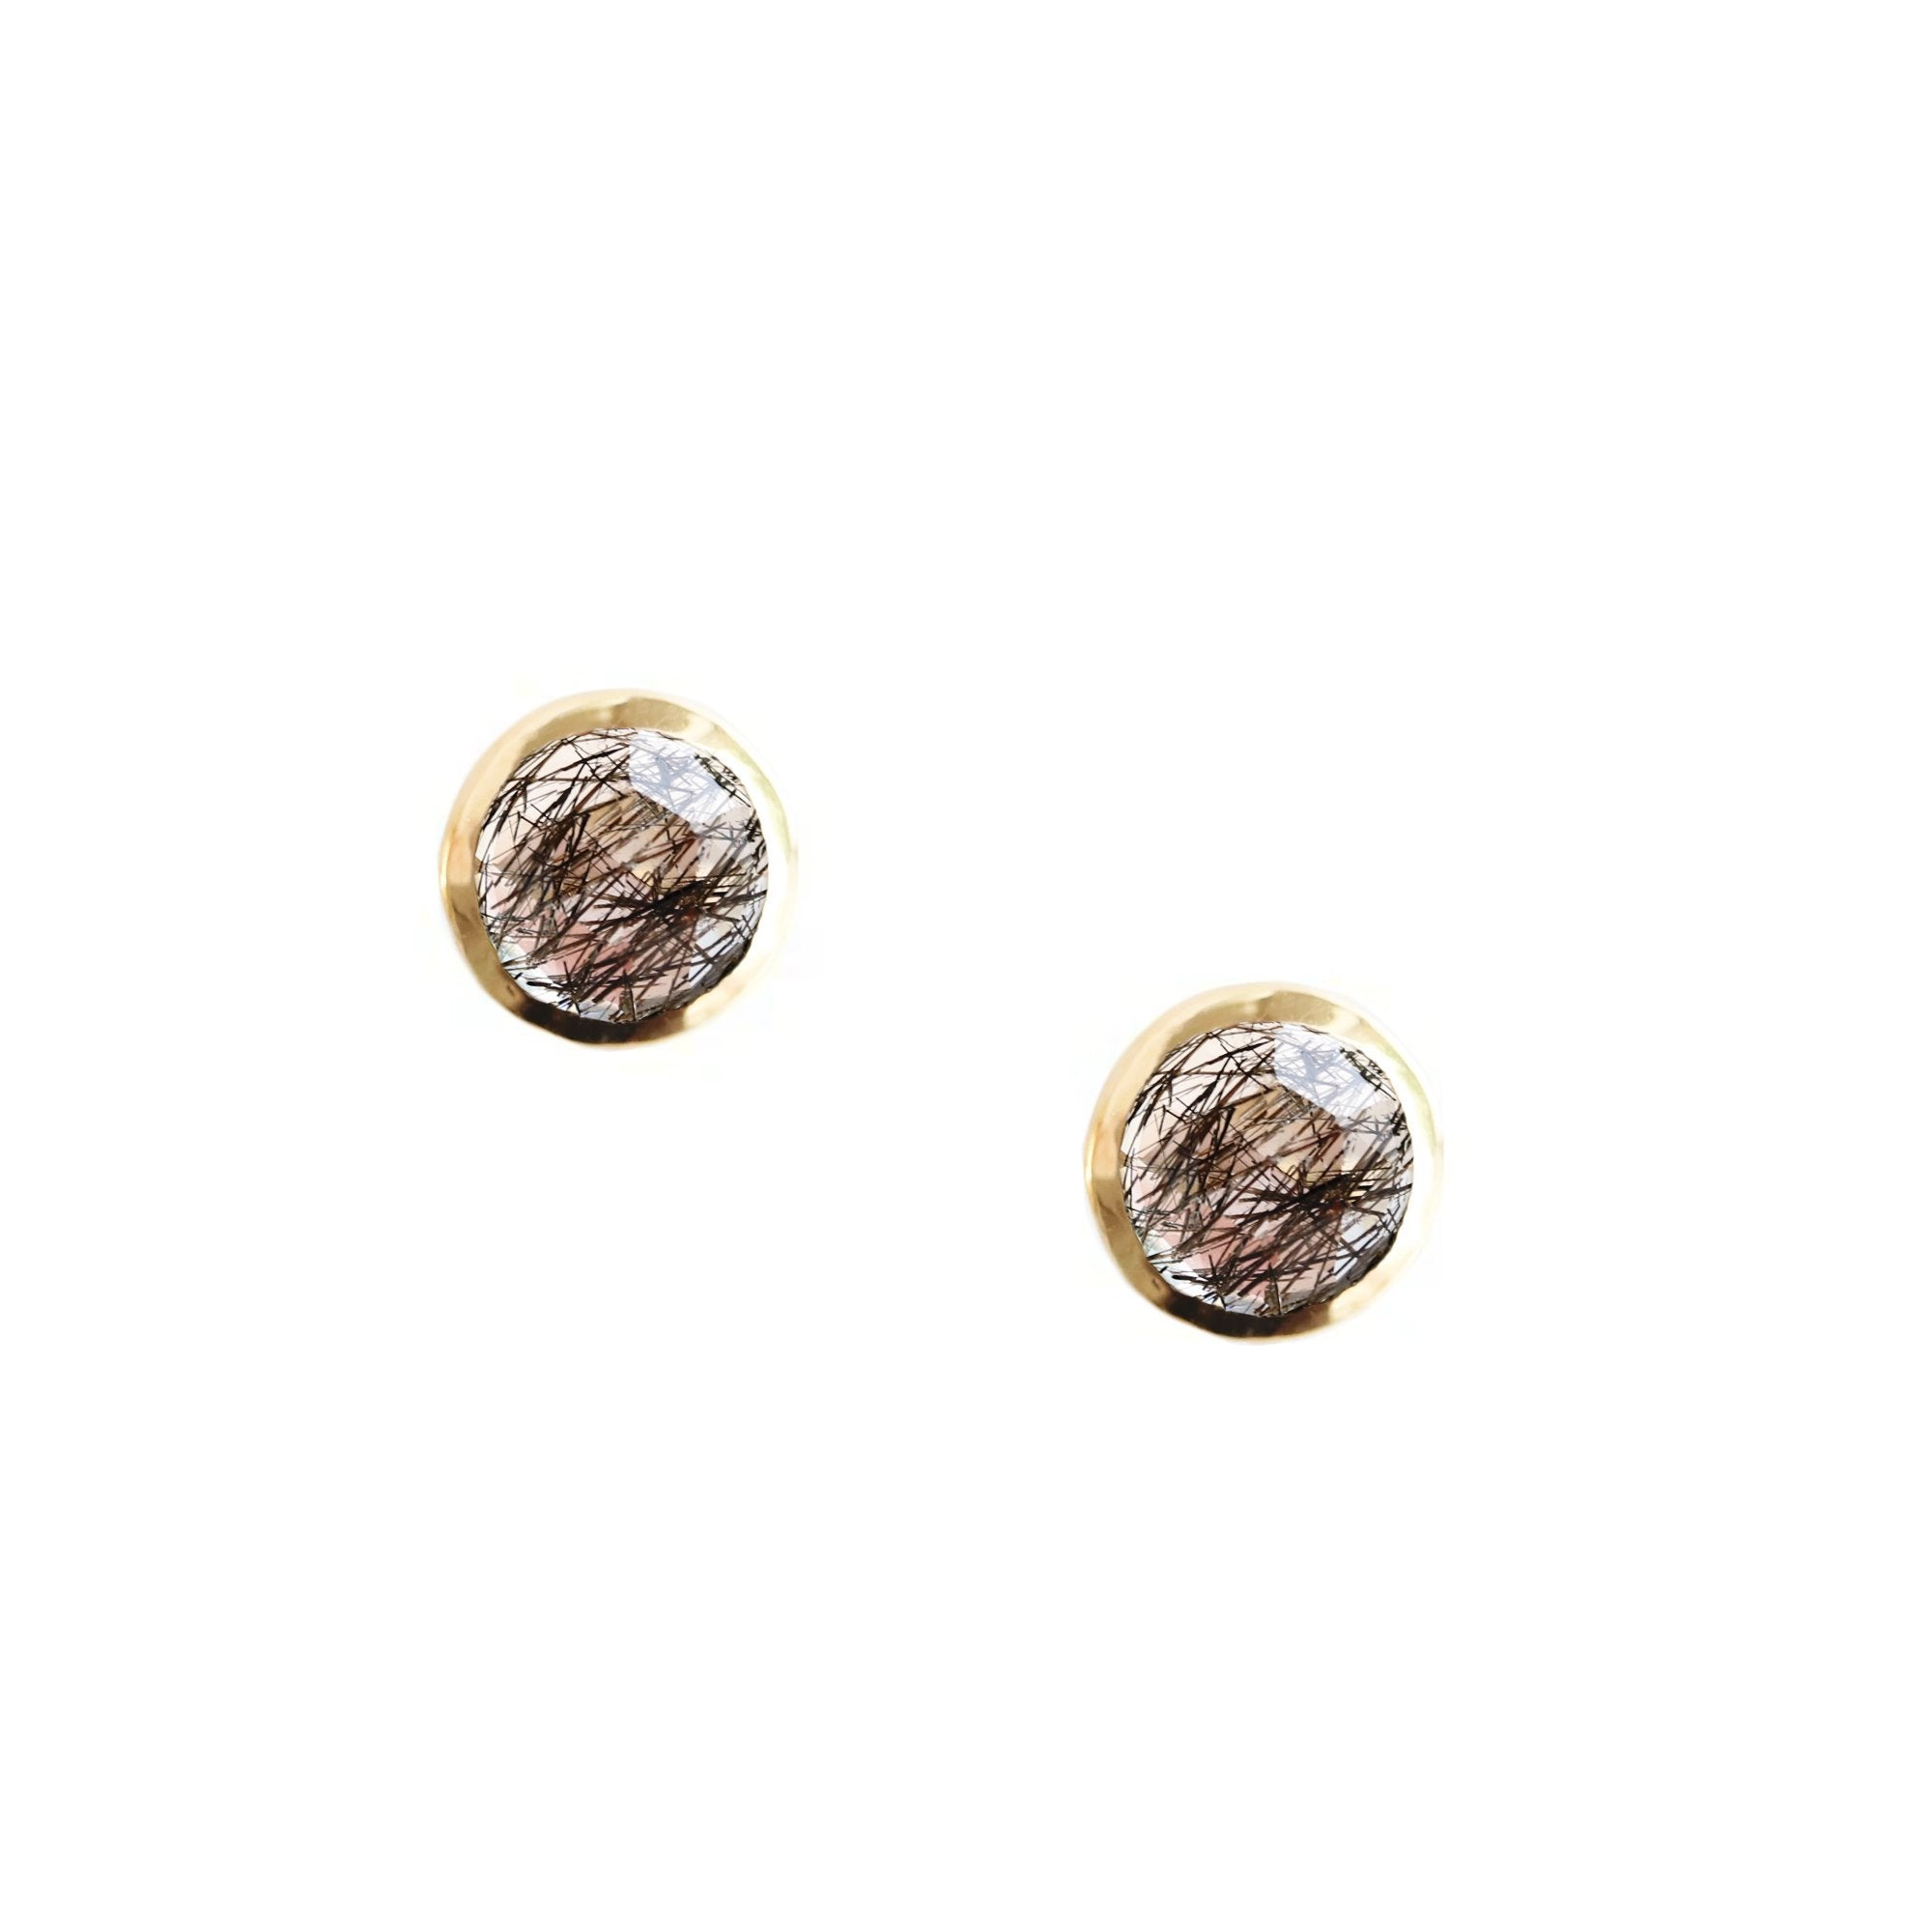 DAINTY LEGACY STUDS - BLACK RUTILATED QUARTZ & GOLD- PREORDER - SO PRETTY CARA COTTER